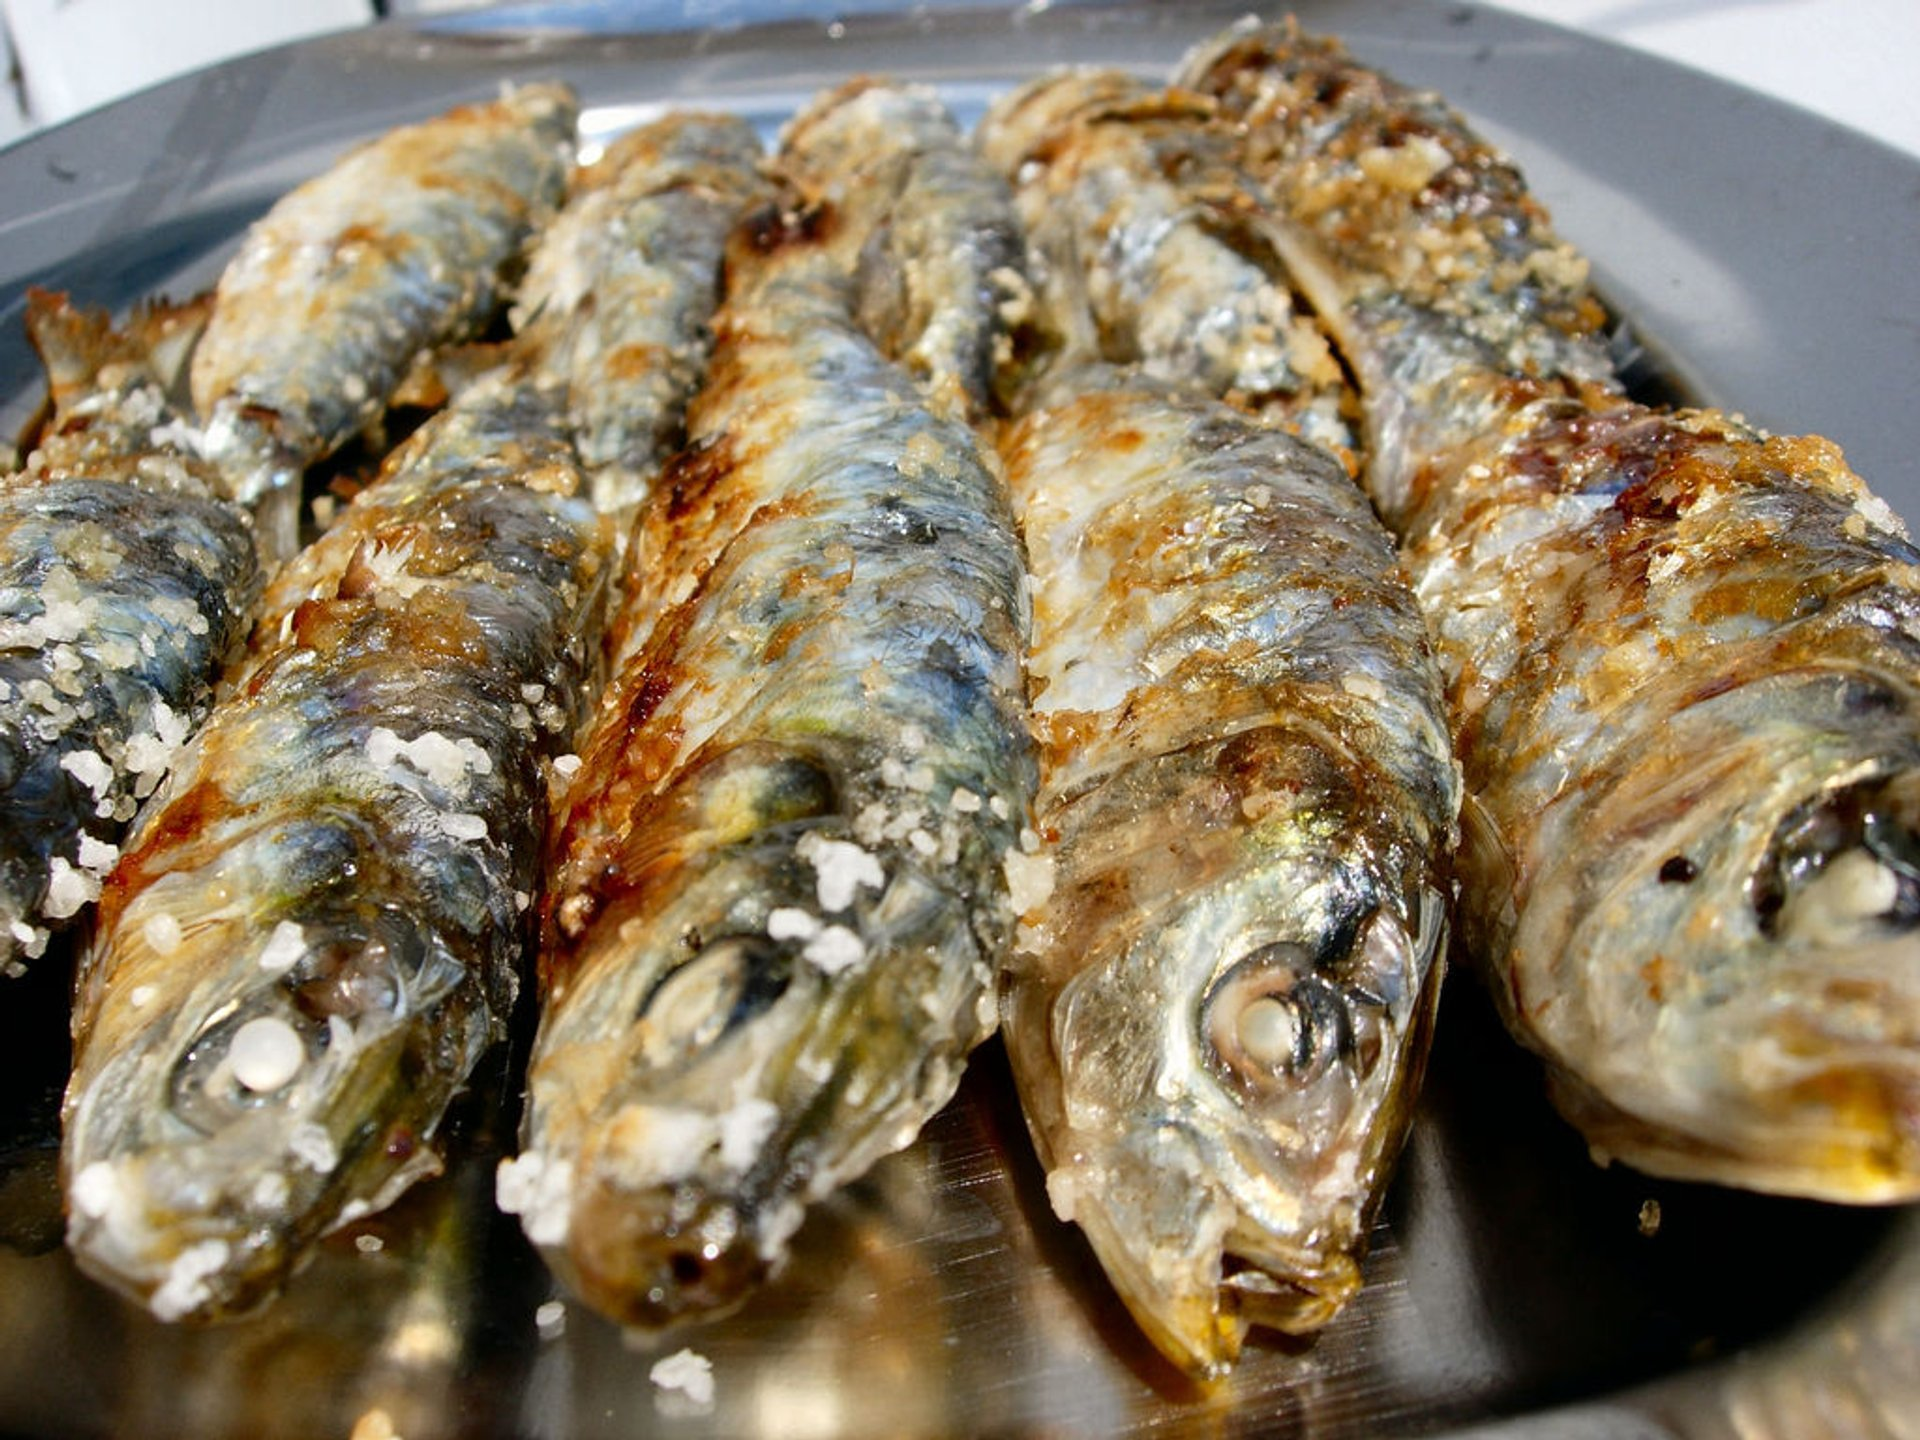 Sardines Season in Portugal - Best Season 2020